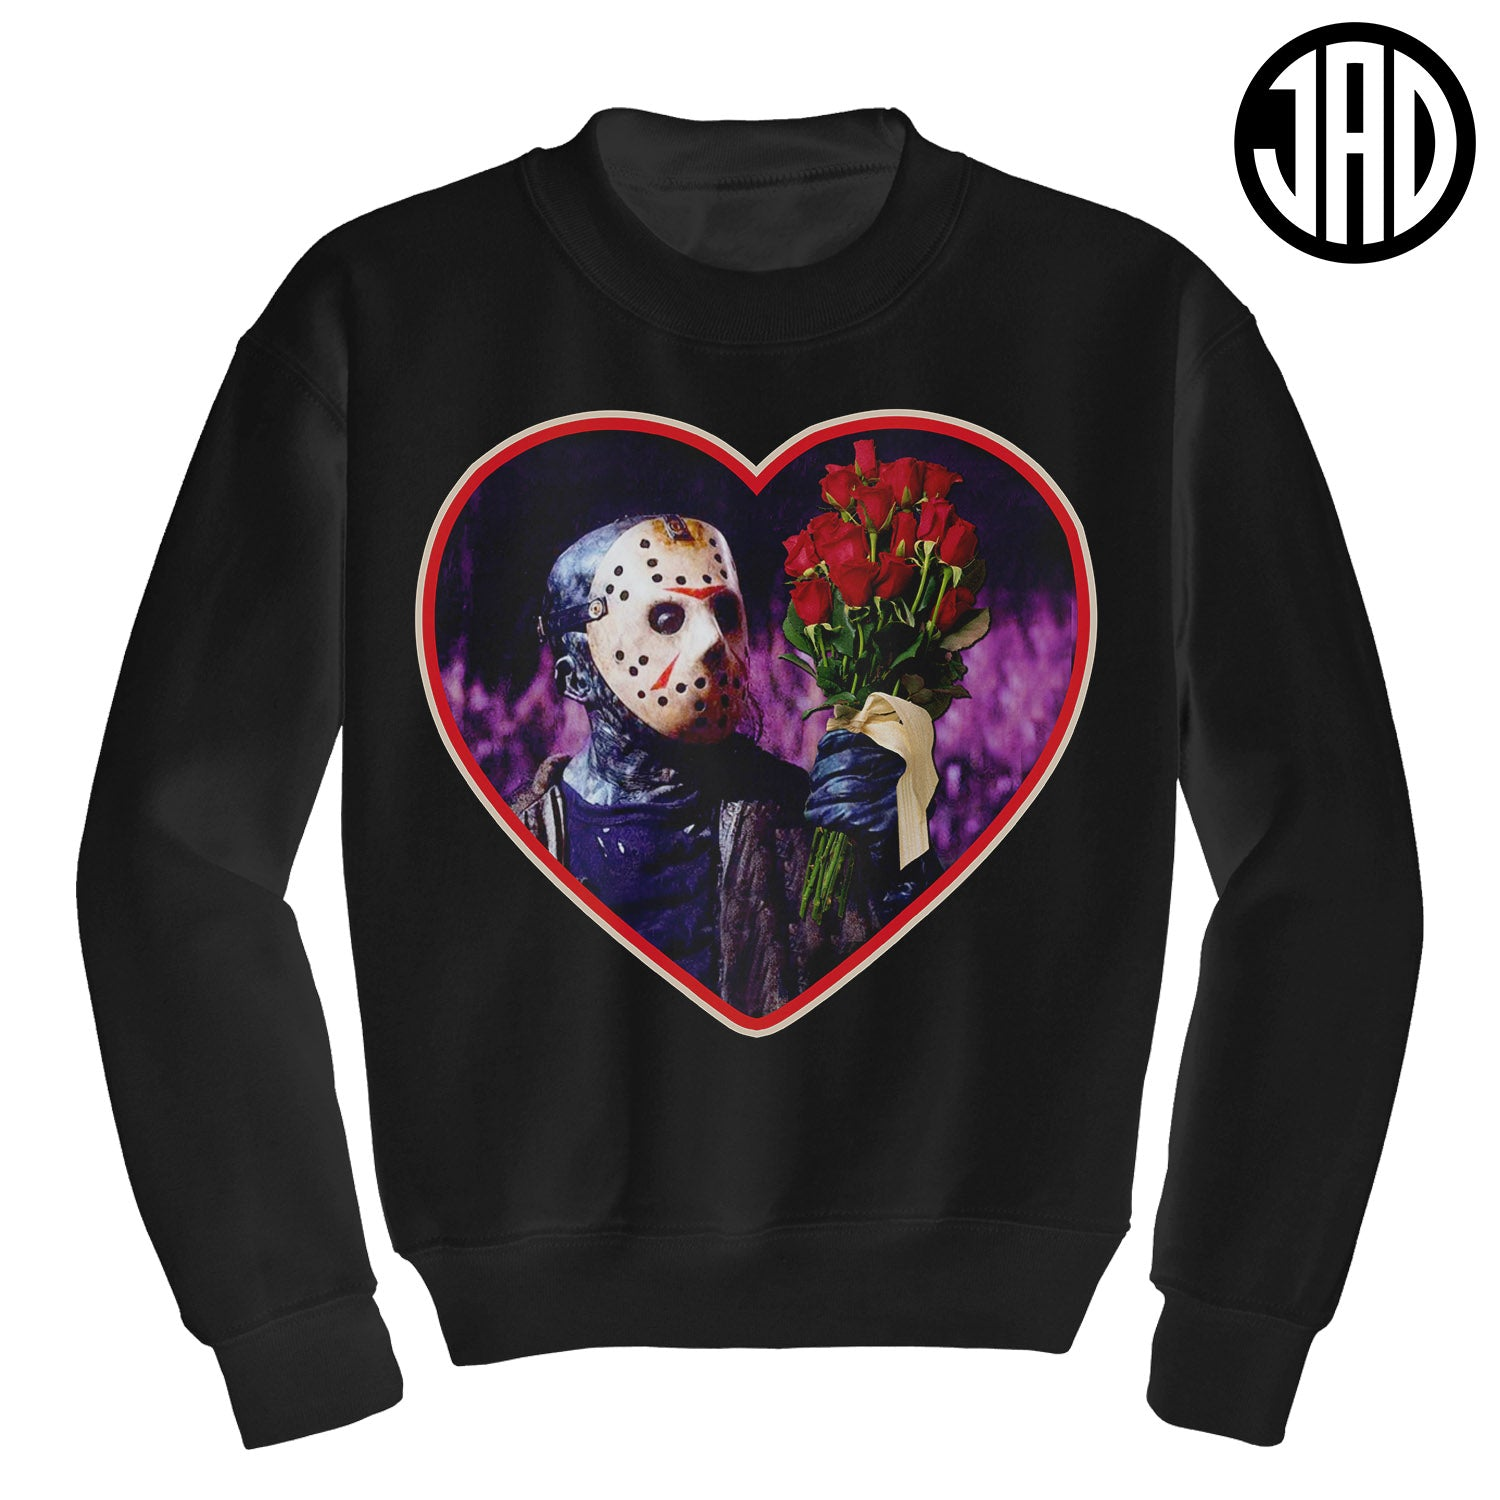 Roses are Red, You are Dead - Crewneck Sweater